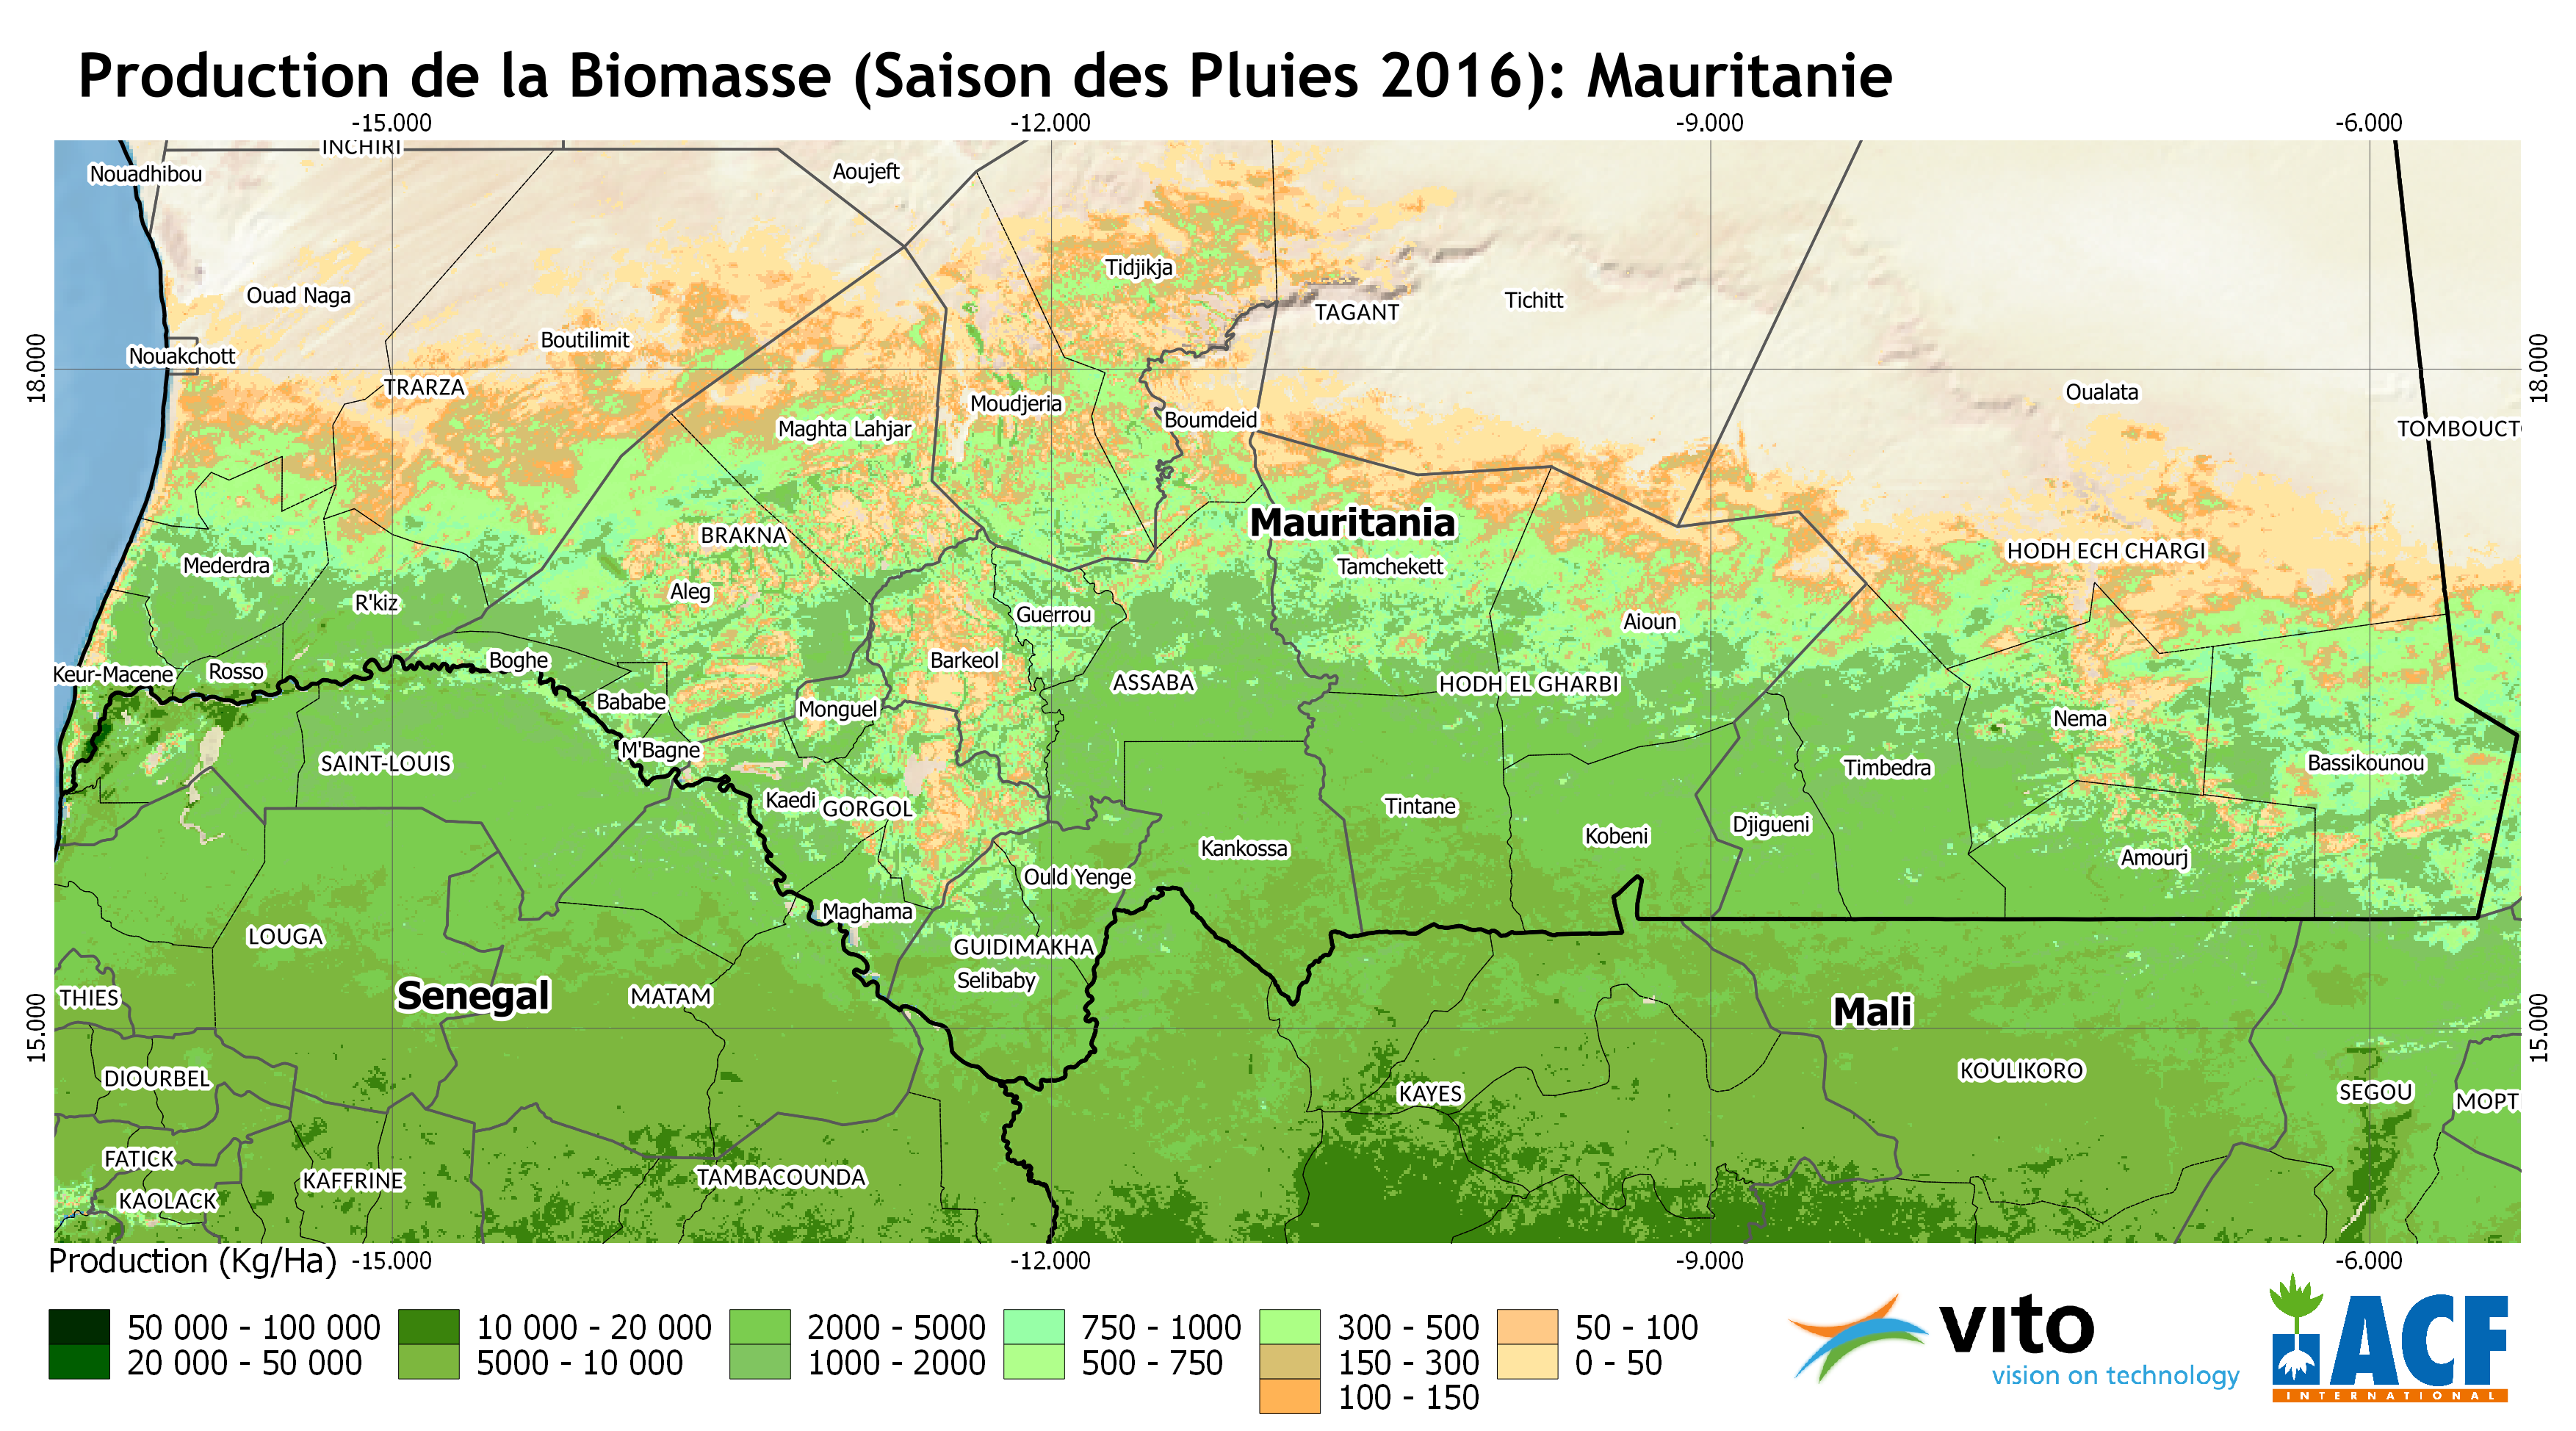 Production de la Biomasse 2016